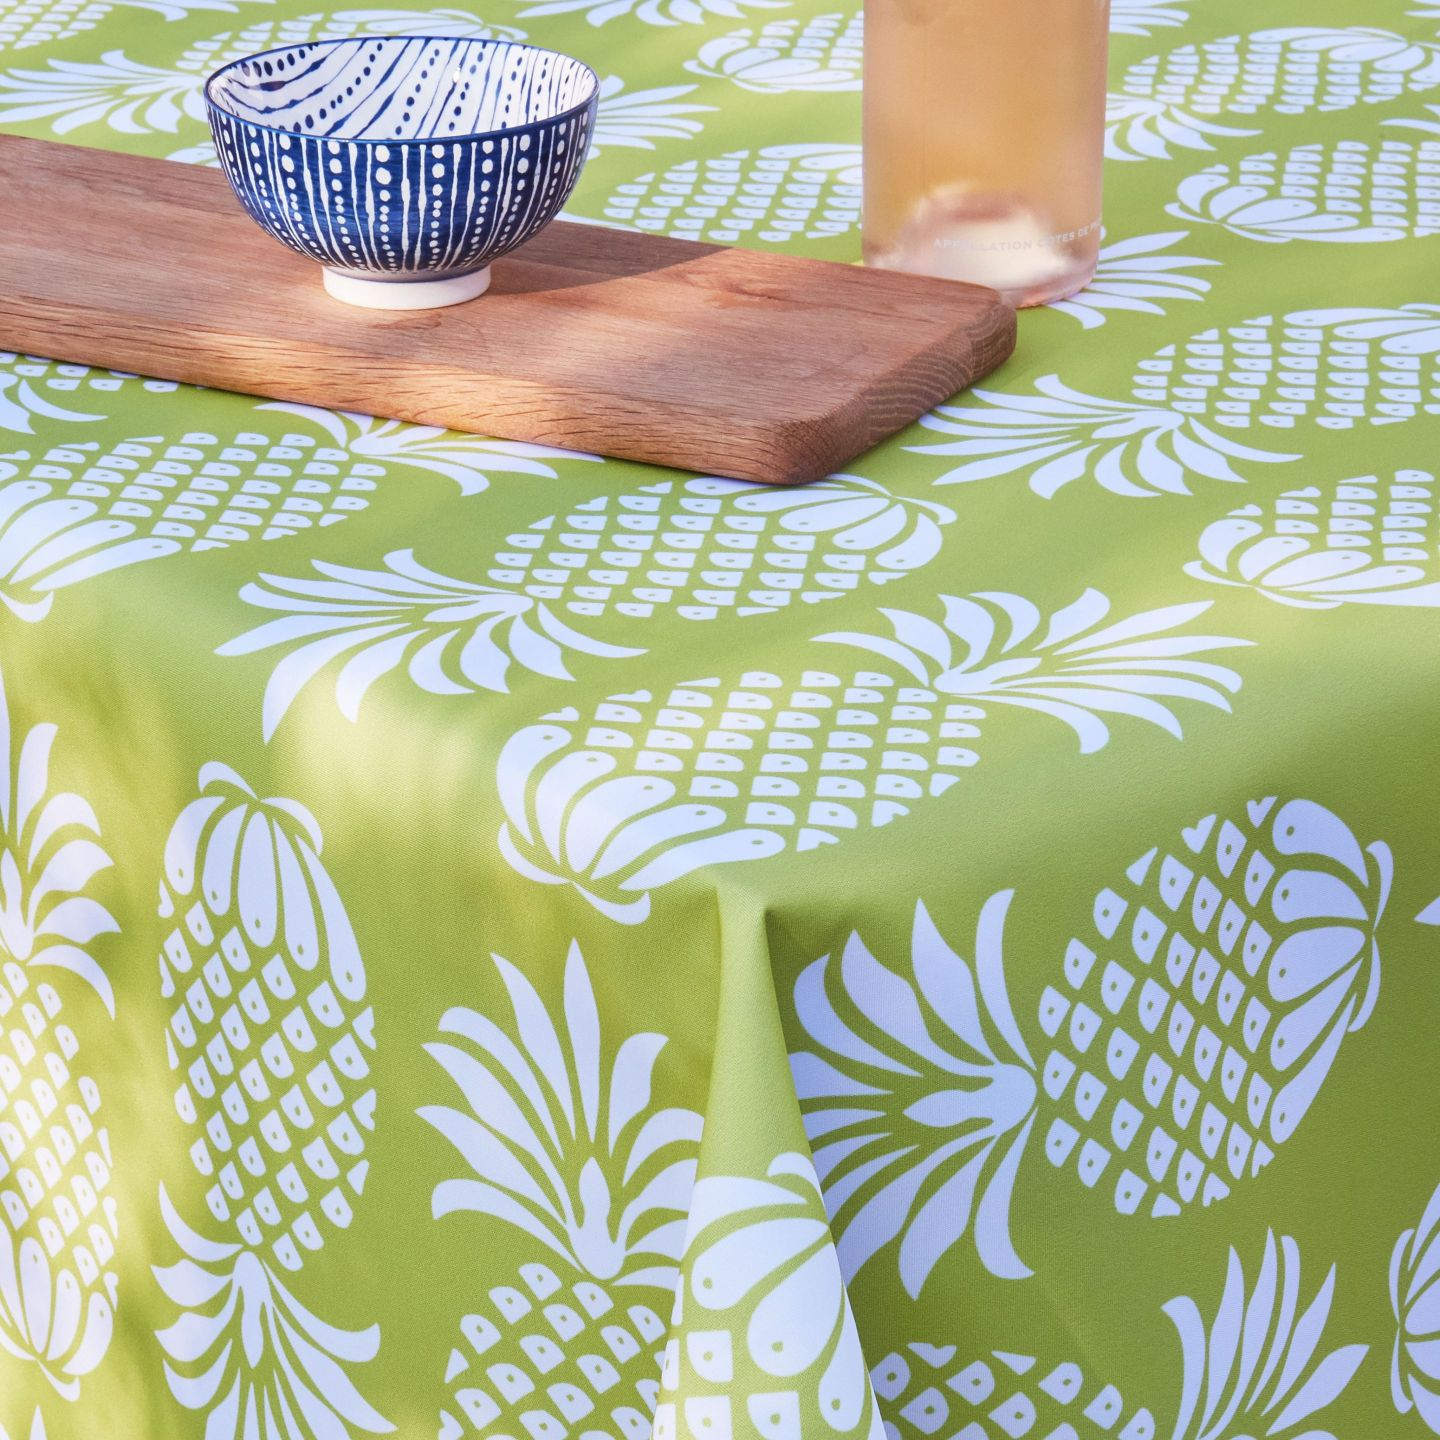 Penelope-Hope-Pina-Colada-Chartreuse-Outdoor-Fabric-2034935-1-1440x1440 Pineapple Decor: Tips for Decorating Your Home with Southern Hospitality